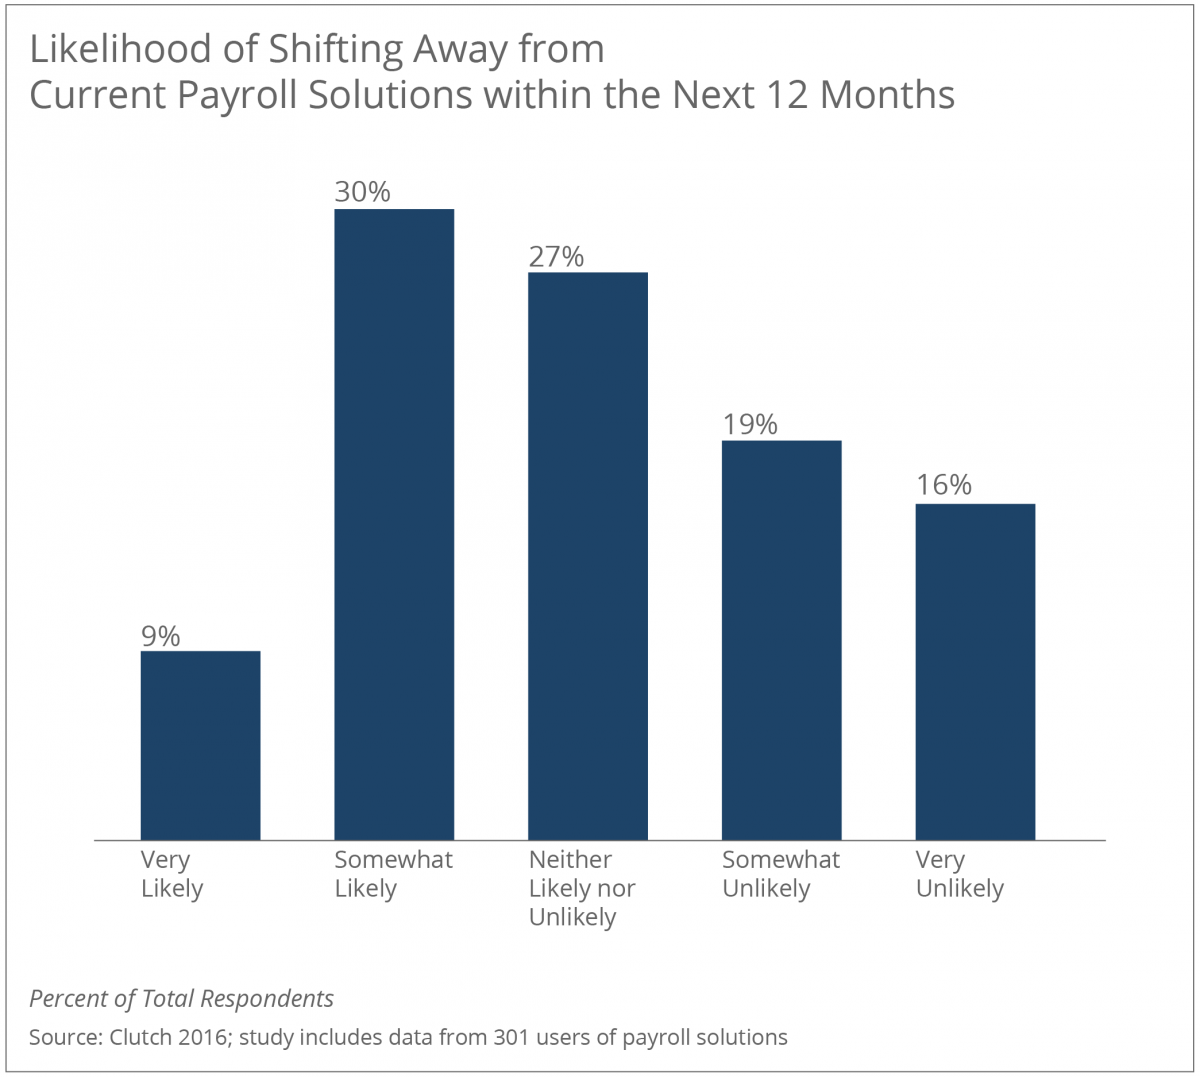 Likelihood of Shifting Away from Current Payroll Soltions